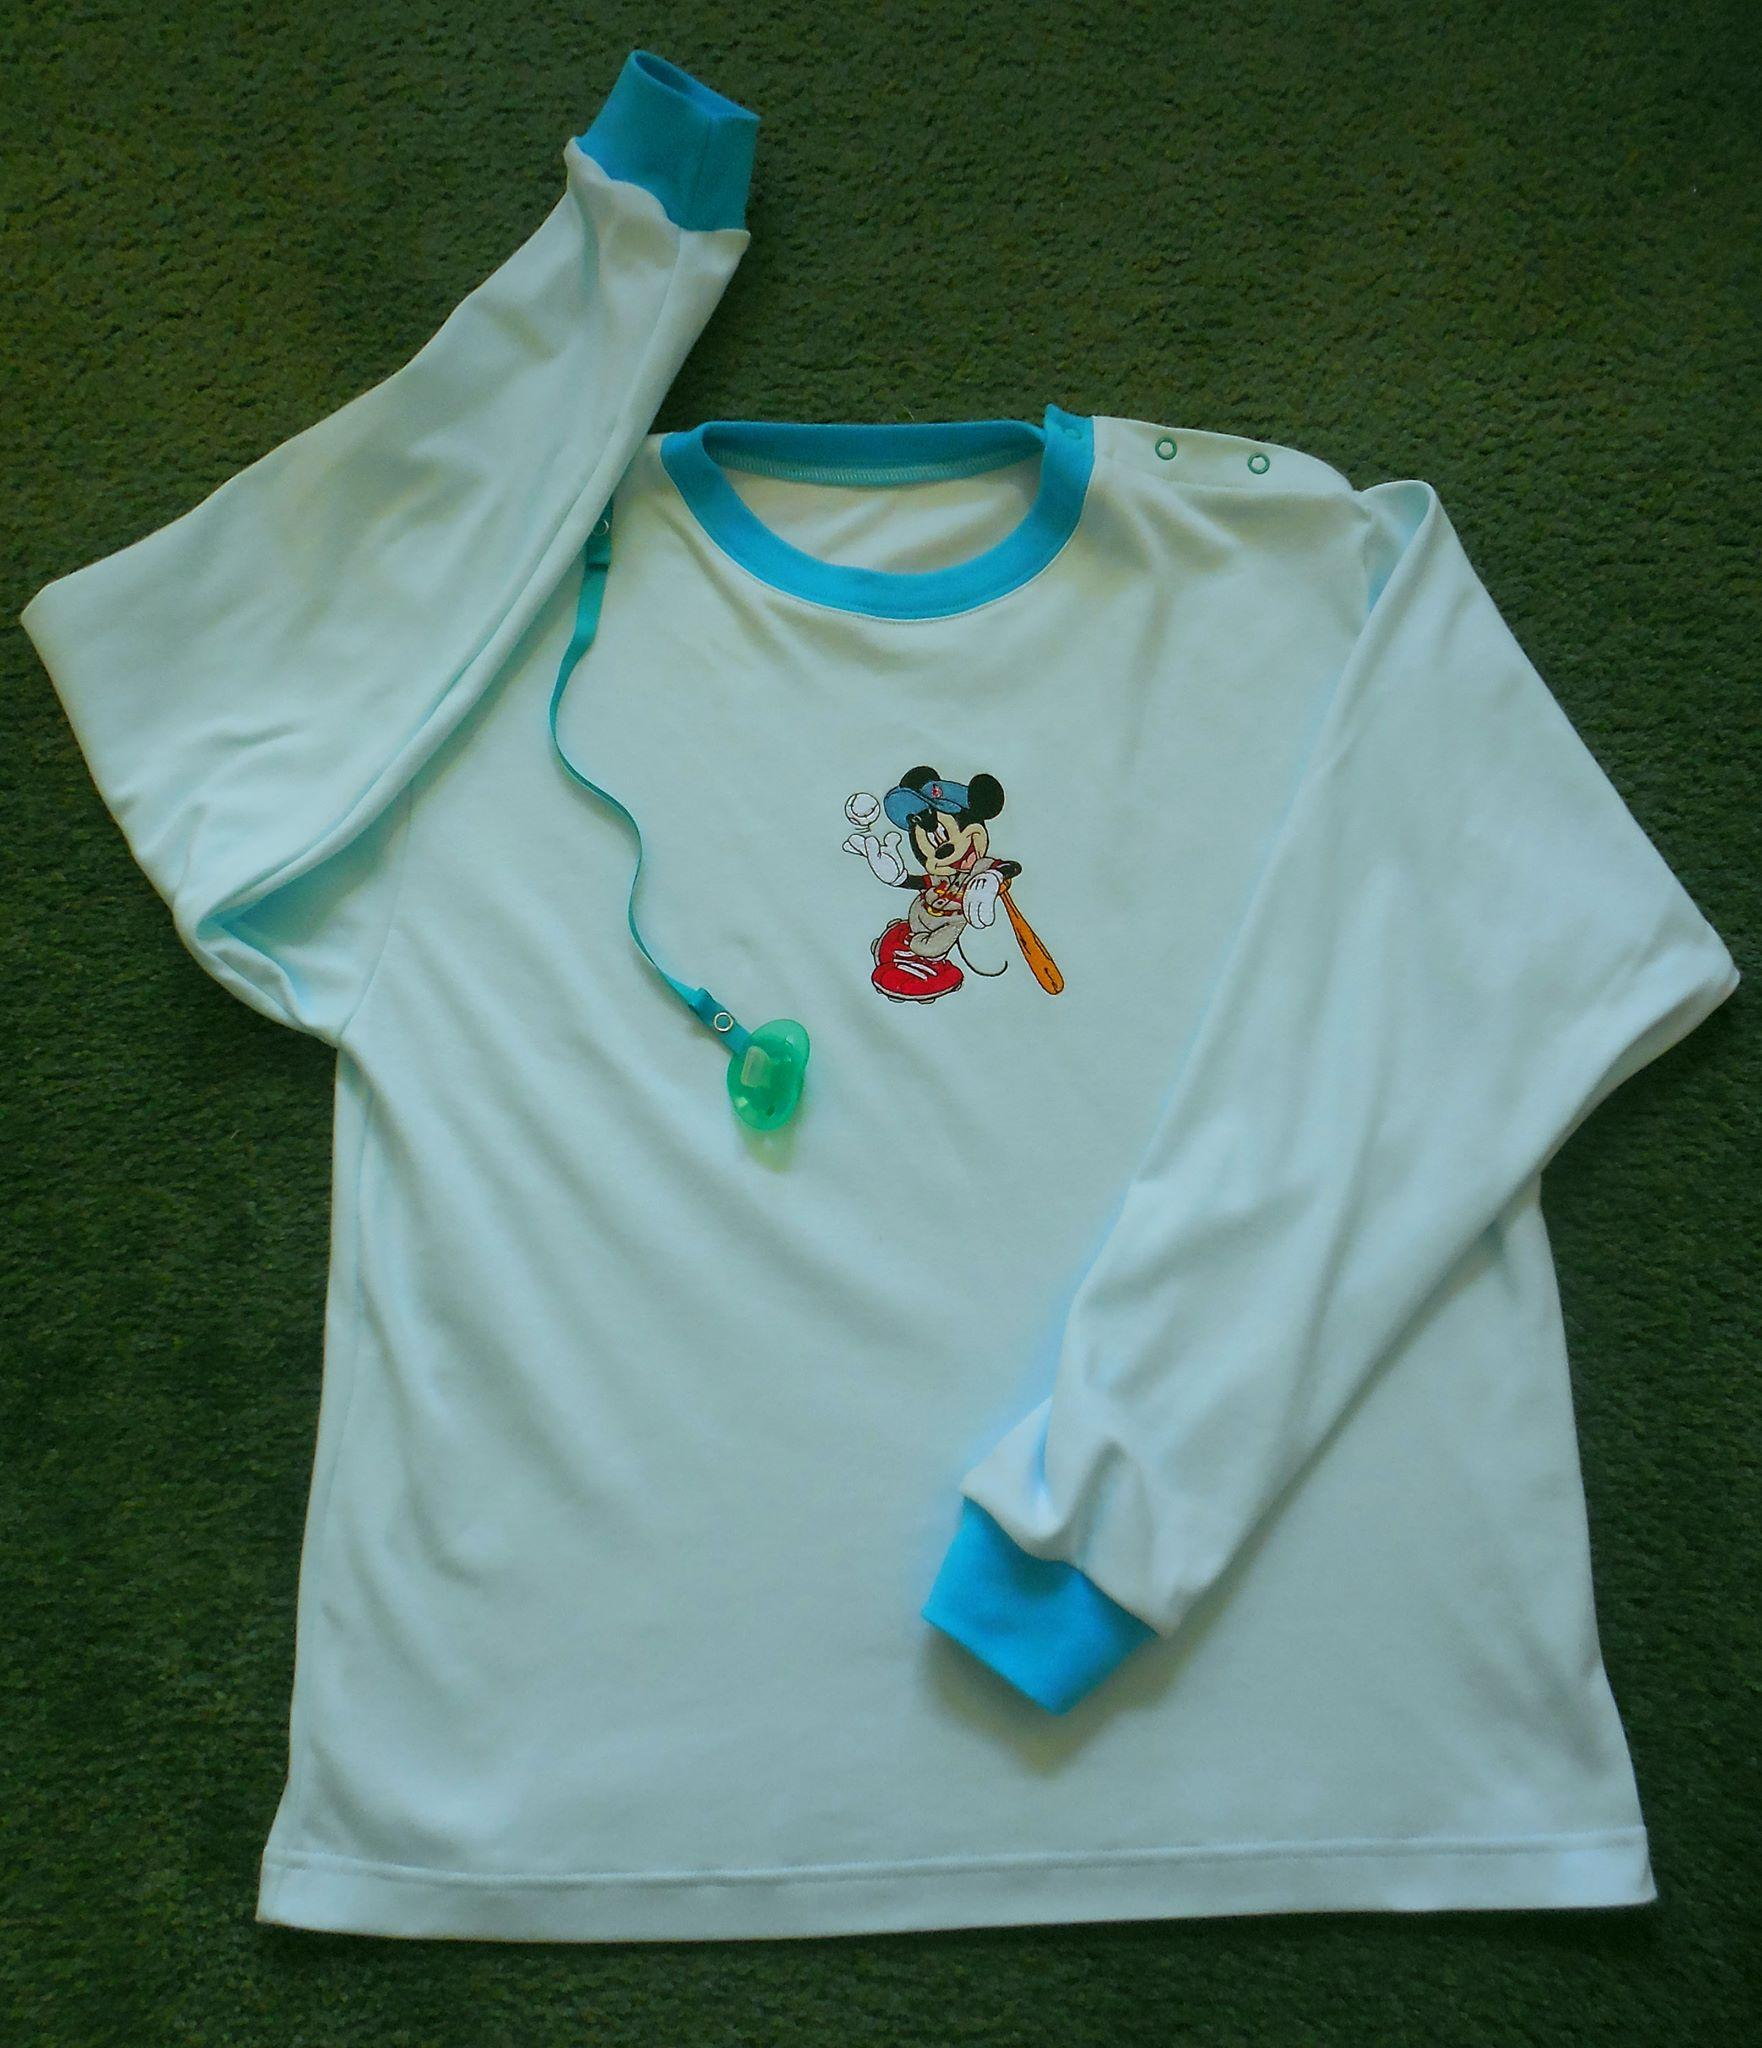 Shirt with Mickey Mouse playing baseball embroidery design